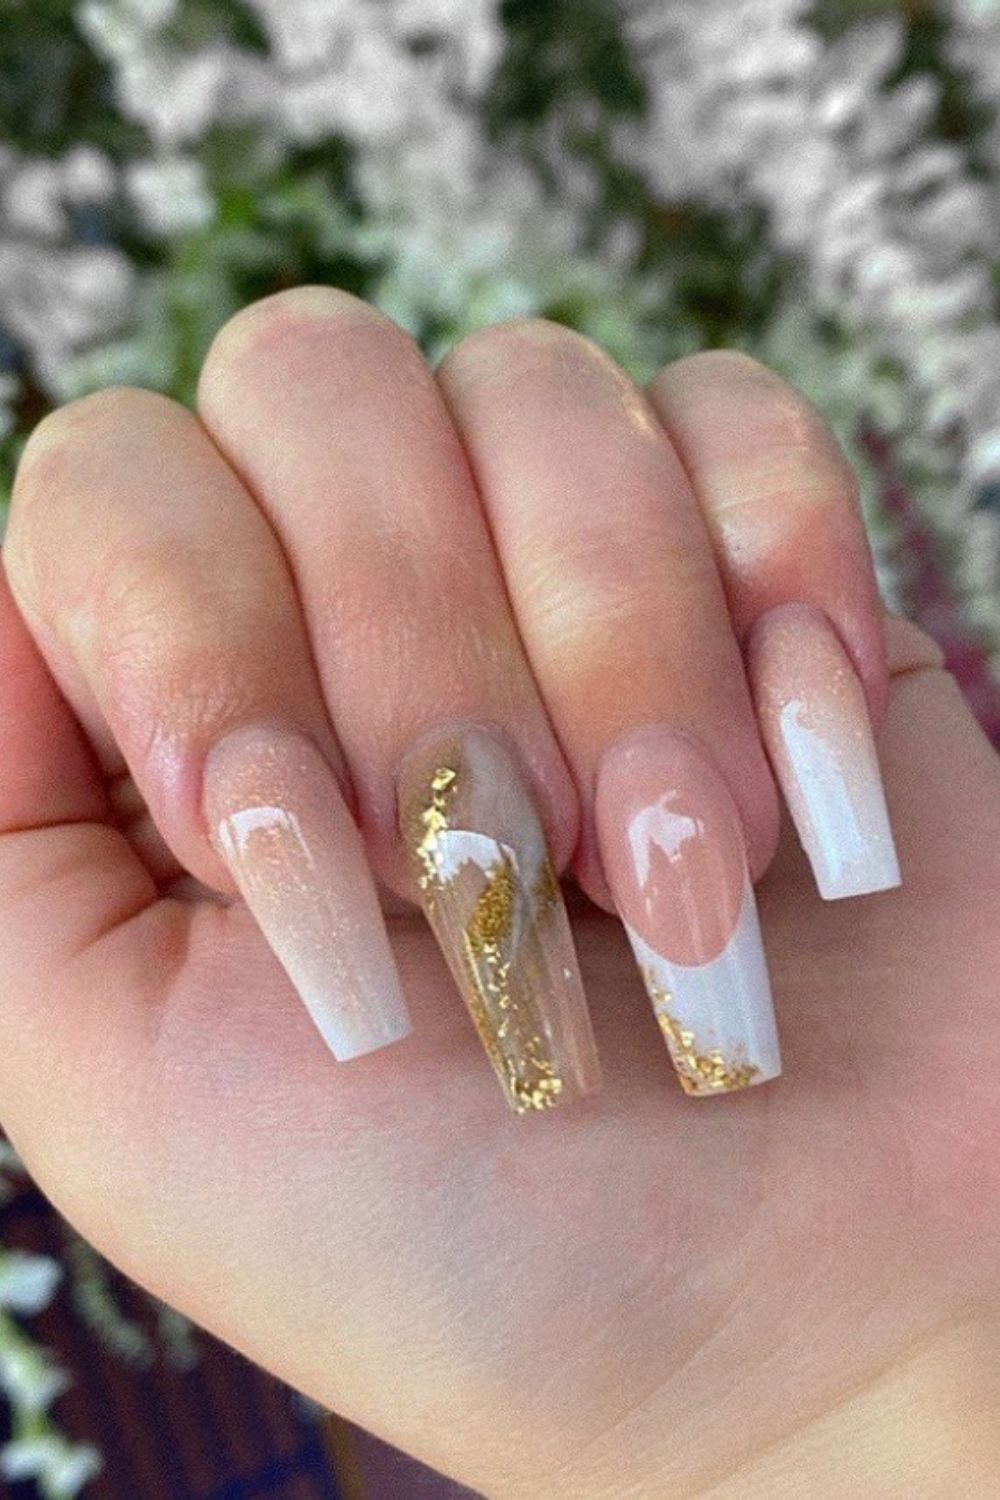 Graduation nails: 40 Shiny Nail Ideas For a Party In 2021!